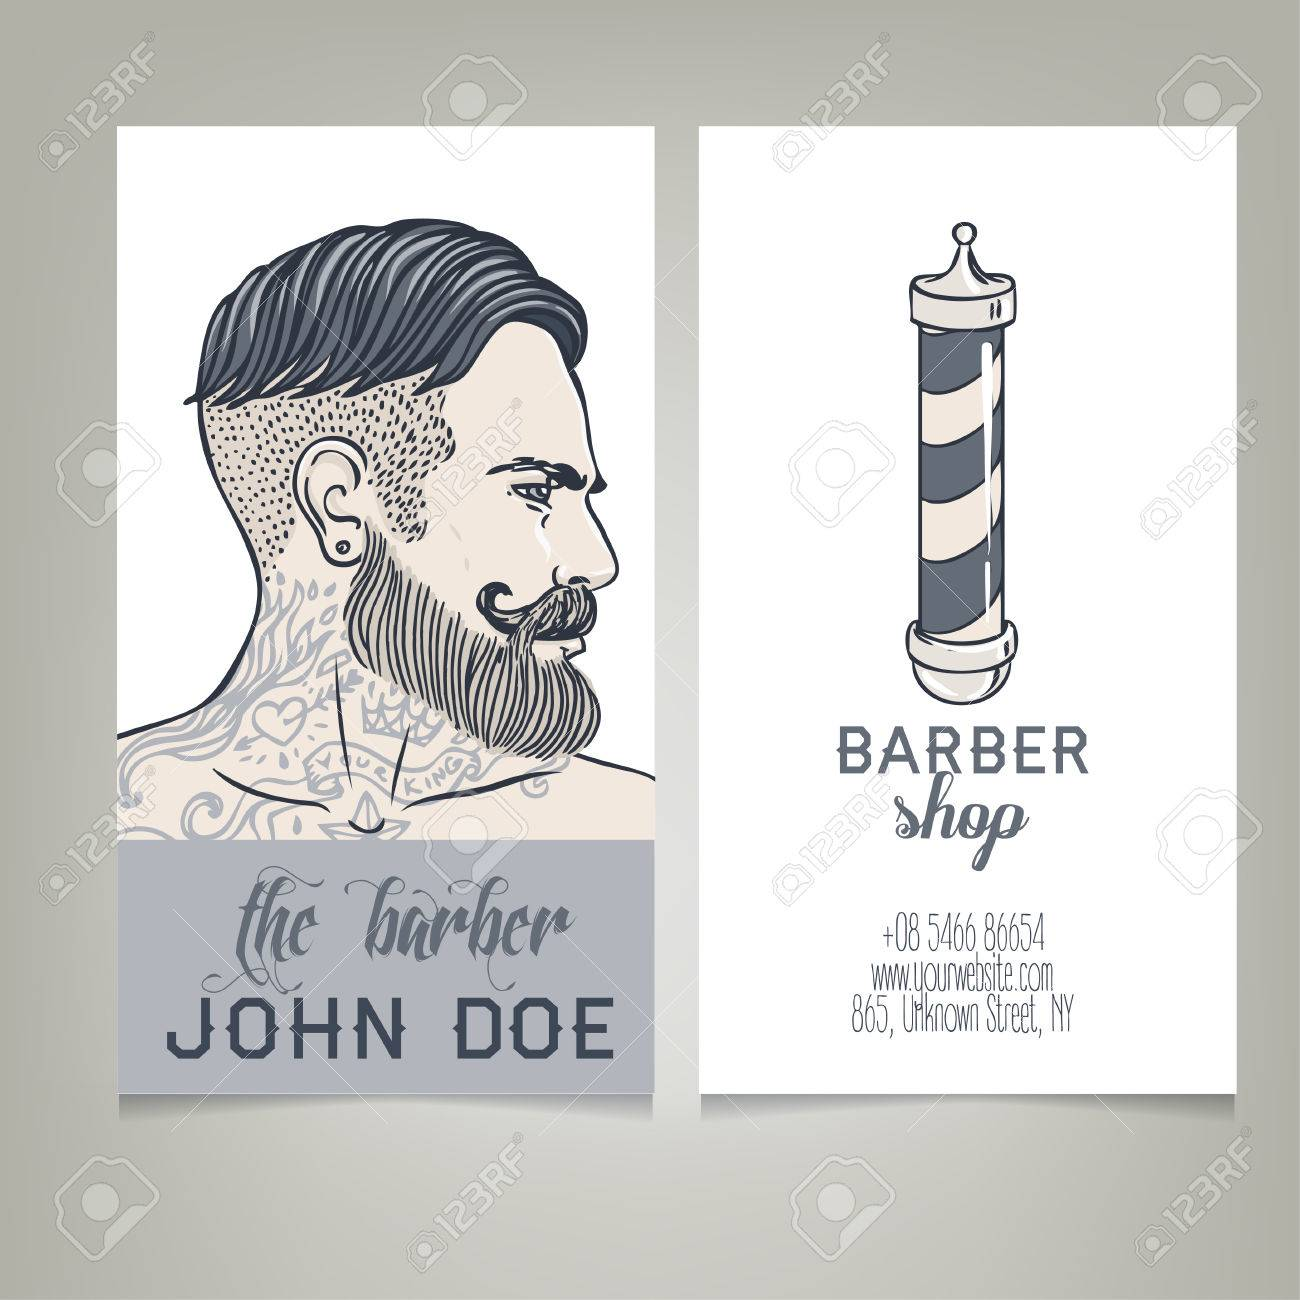 Hipster barber shop business card design template vector hipster barber shop business card design template vector illustration stock vector 43448459 wajeb Image collections